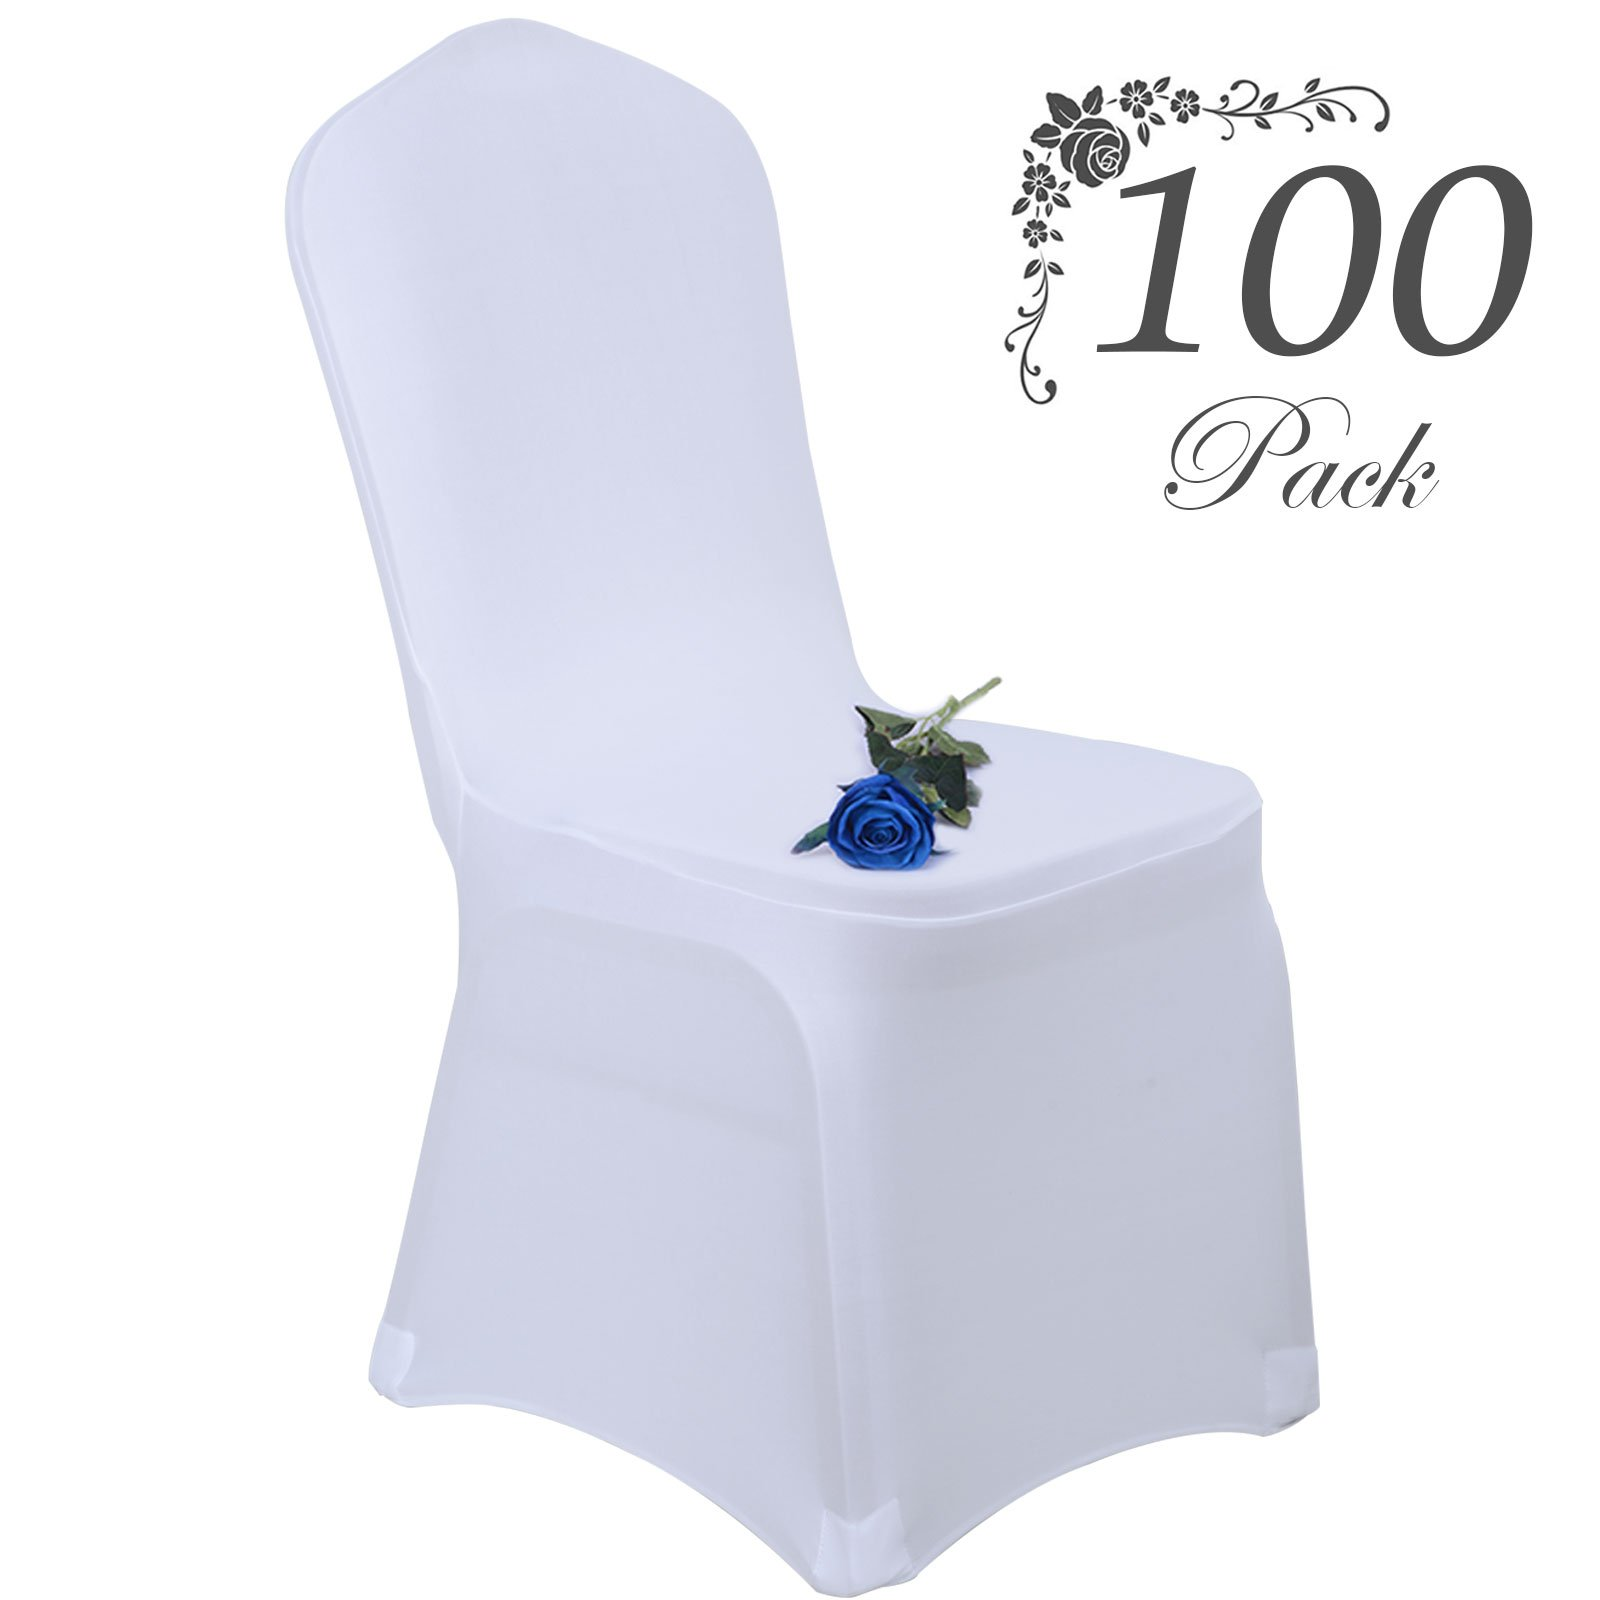 Voilamart Wedding Chair Covers Set of 100pcs Stretchable Polyester Spandex Chair Slipcover for Dinning Banquet Party Ceremony - White